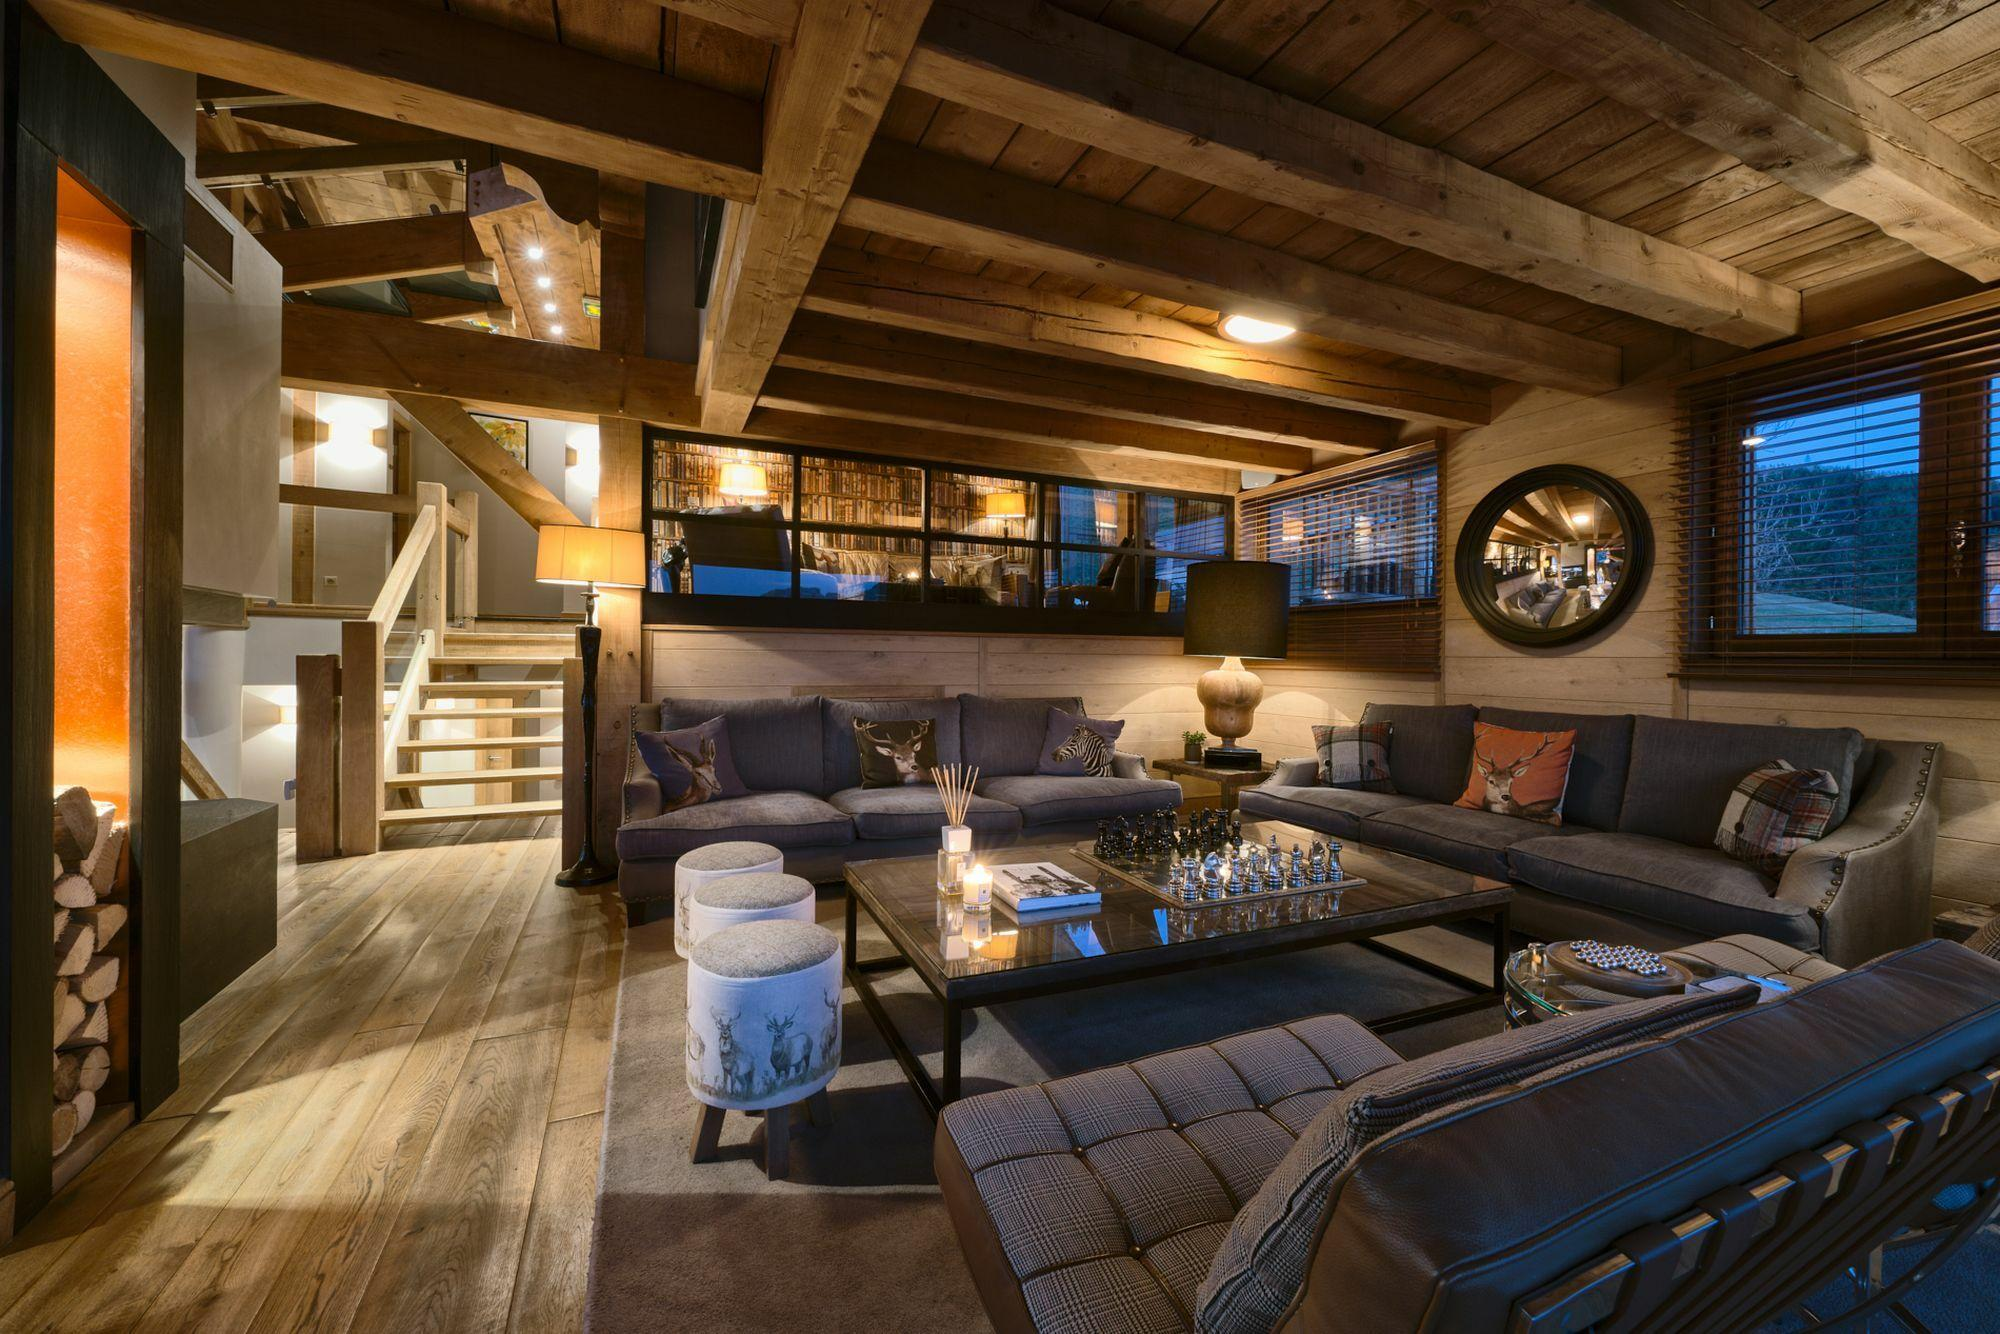 Les Gets accommodation chalets for rent in Les Gets apartments to rent in Les Gets holiday homes to rent in Les Gets